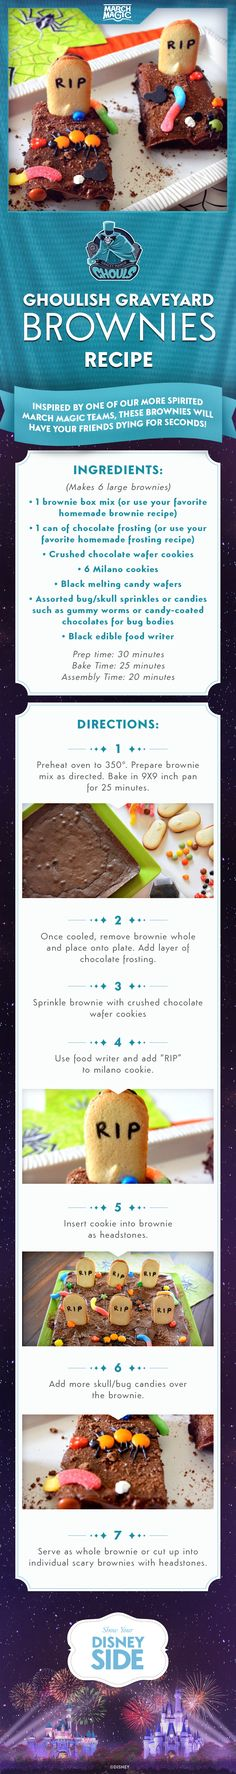 Check out theses Ghoulish Graveyard Brownies inspired by the Gracey ...